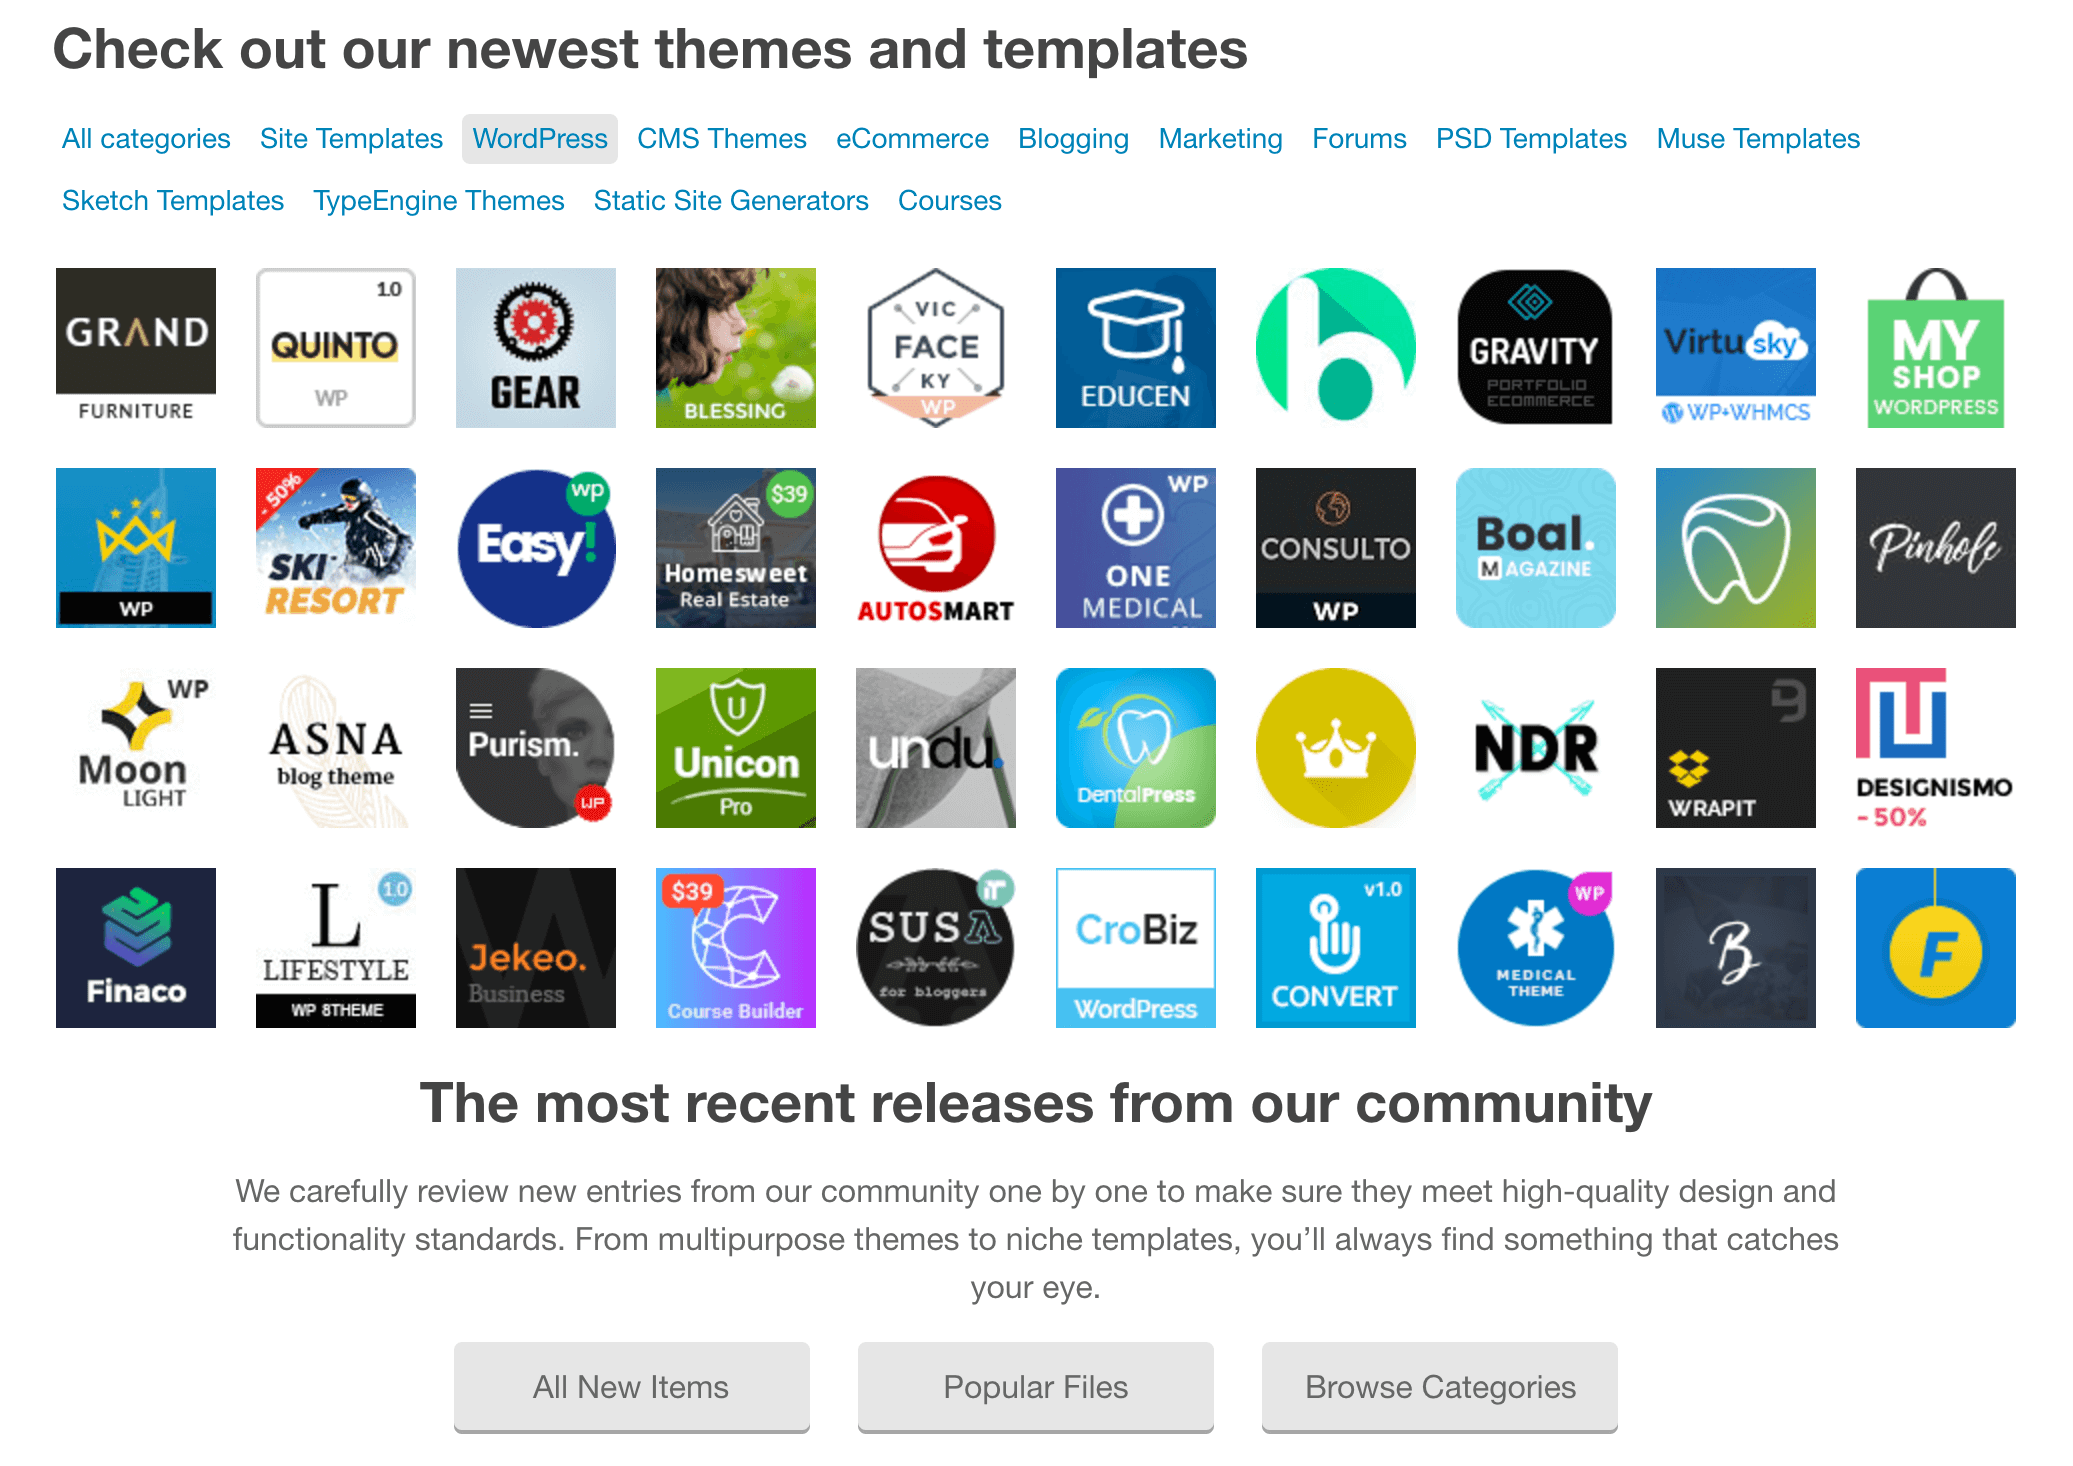 A selection of ThemeForest's WordPress themes.